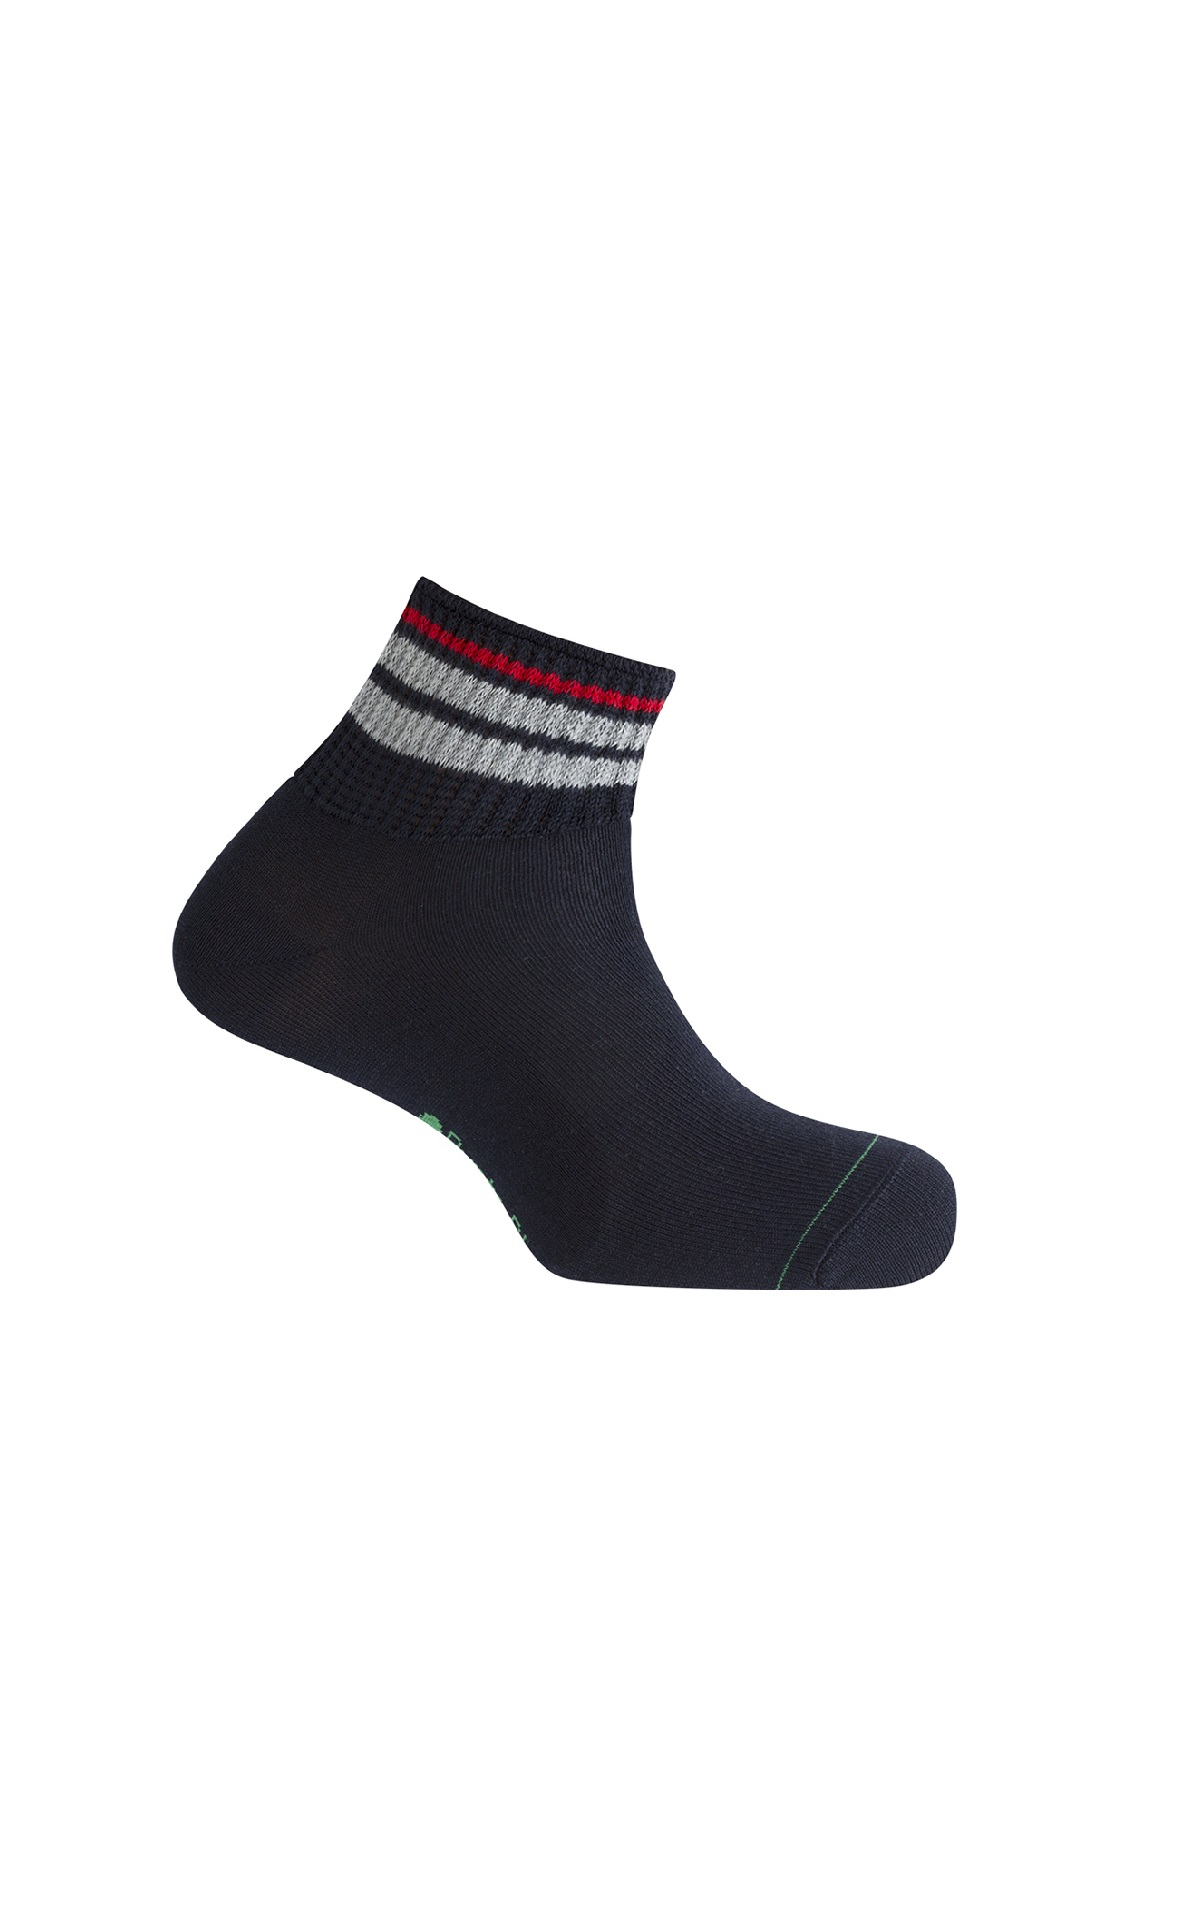 Black sport sock Punto Blanco